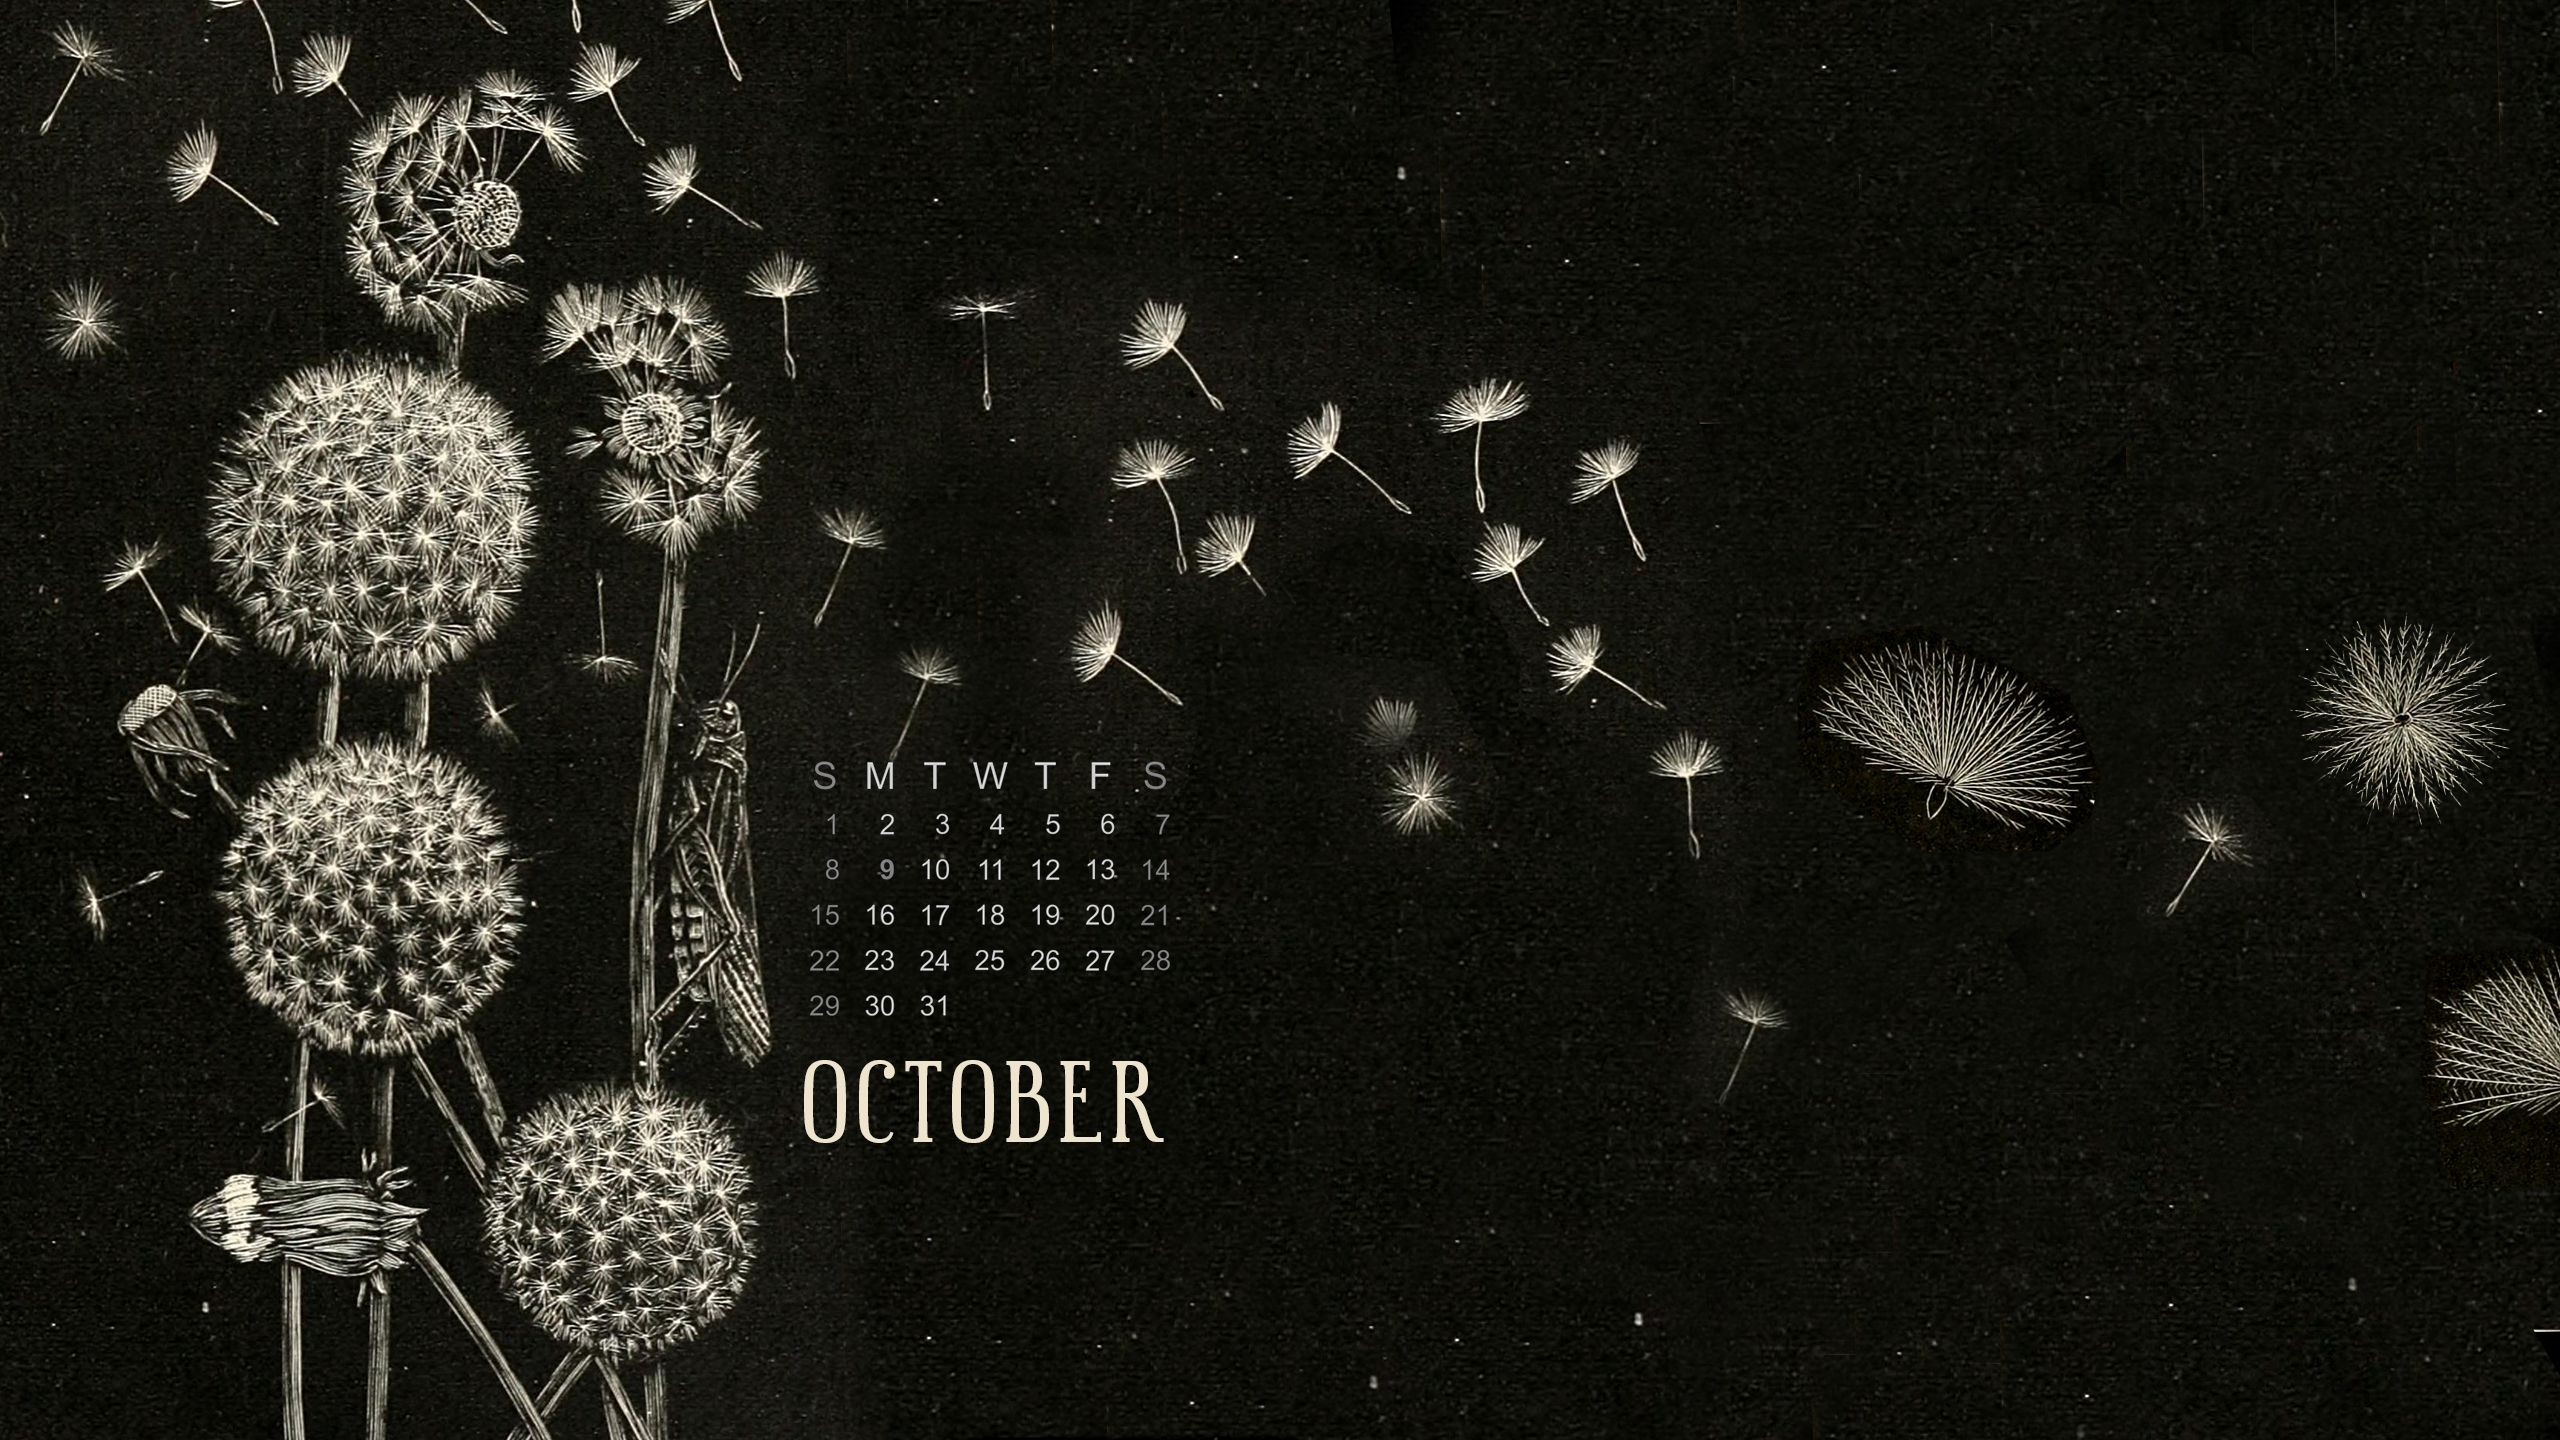 October 2017 Free Calendar Desktop And Iphone Wallpaper Calendar Wallpaper Calendar Wallpaper 2017 Iphone Wallpaper October